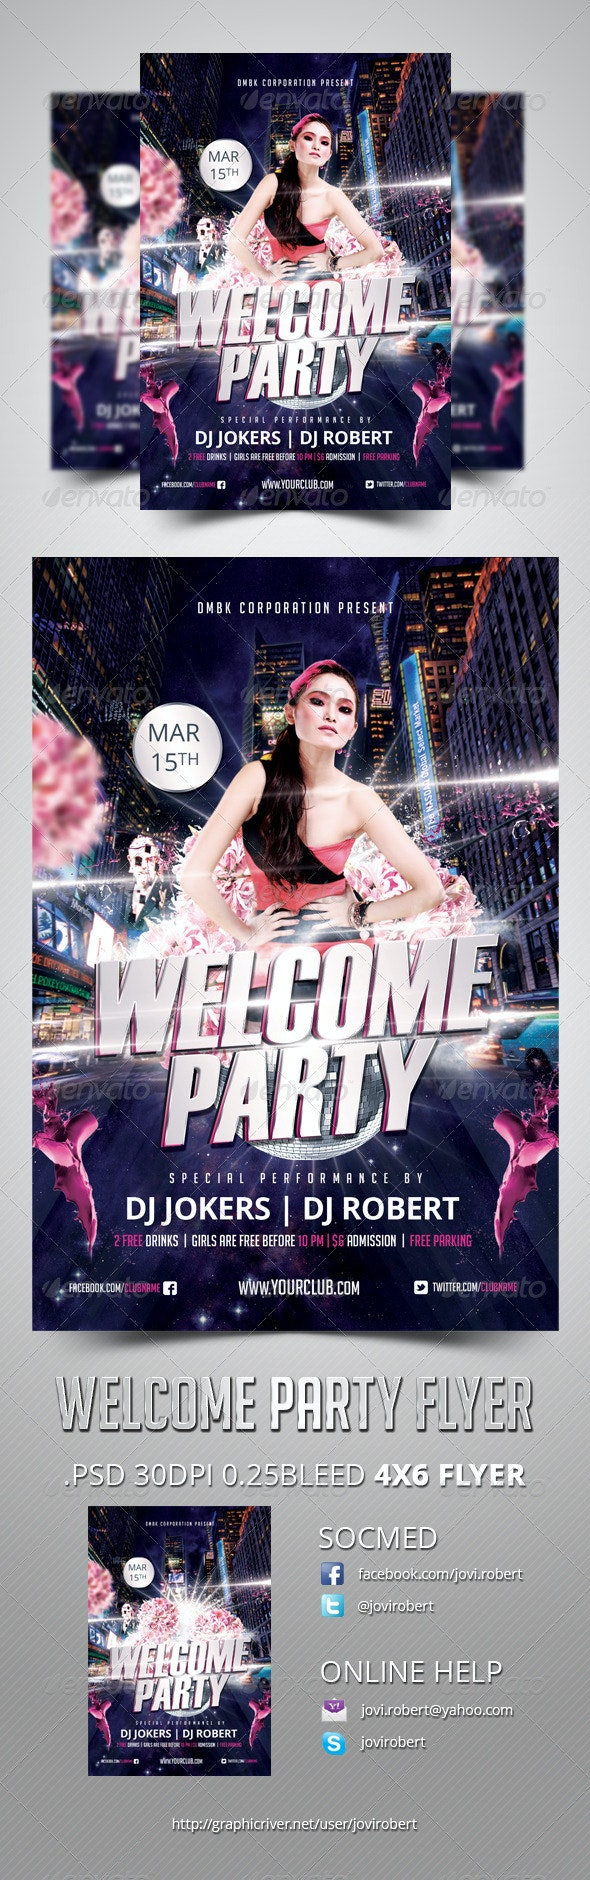 Welcome Party Flyer - Clubs & Parties Events